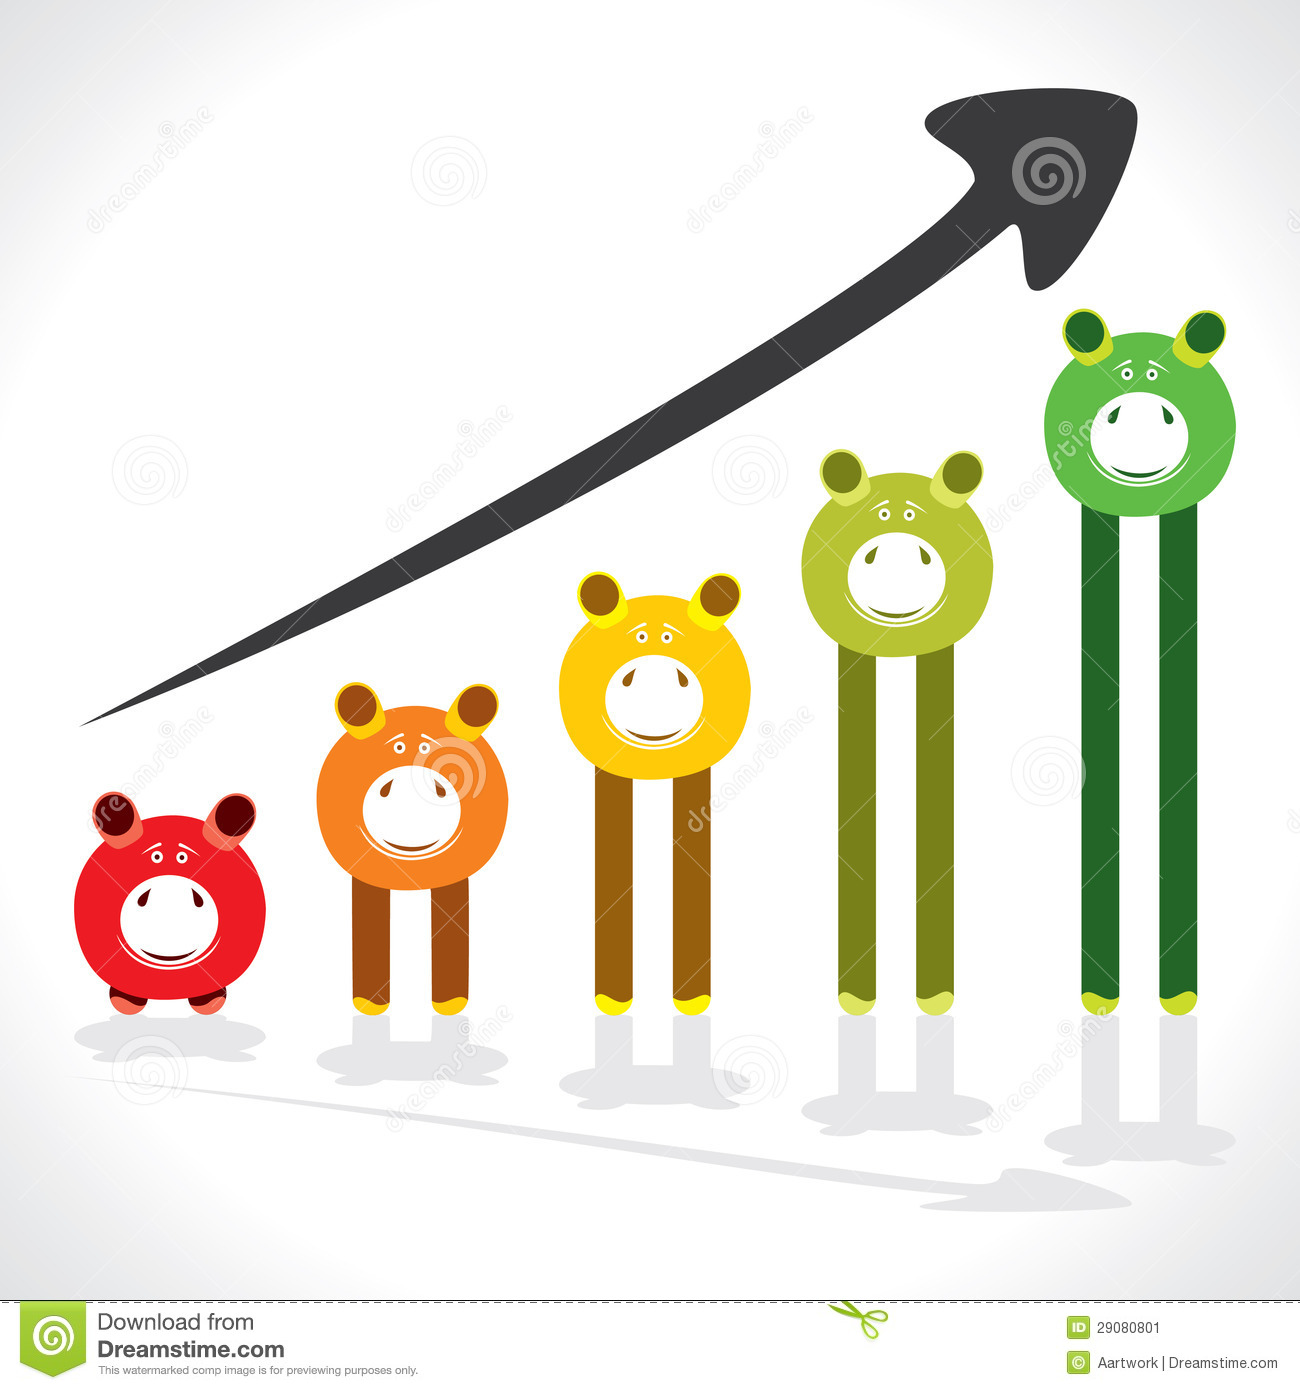 Clipart stock market graph clip black and white download Stock Graph Clipart - Clipart Kid clip black and white download